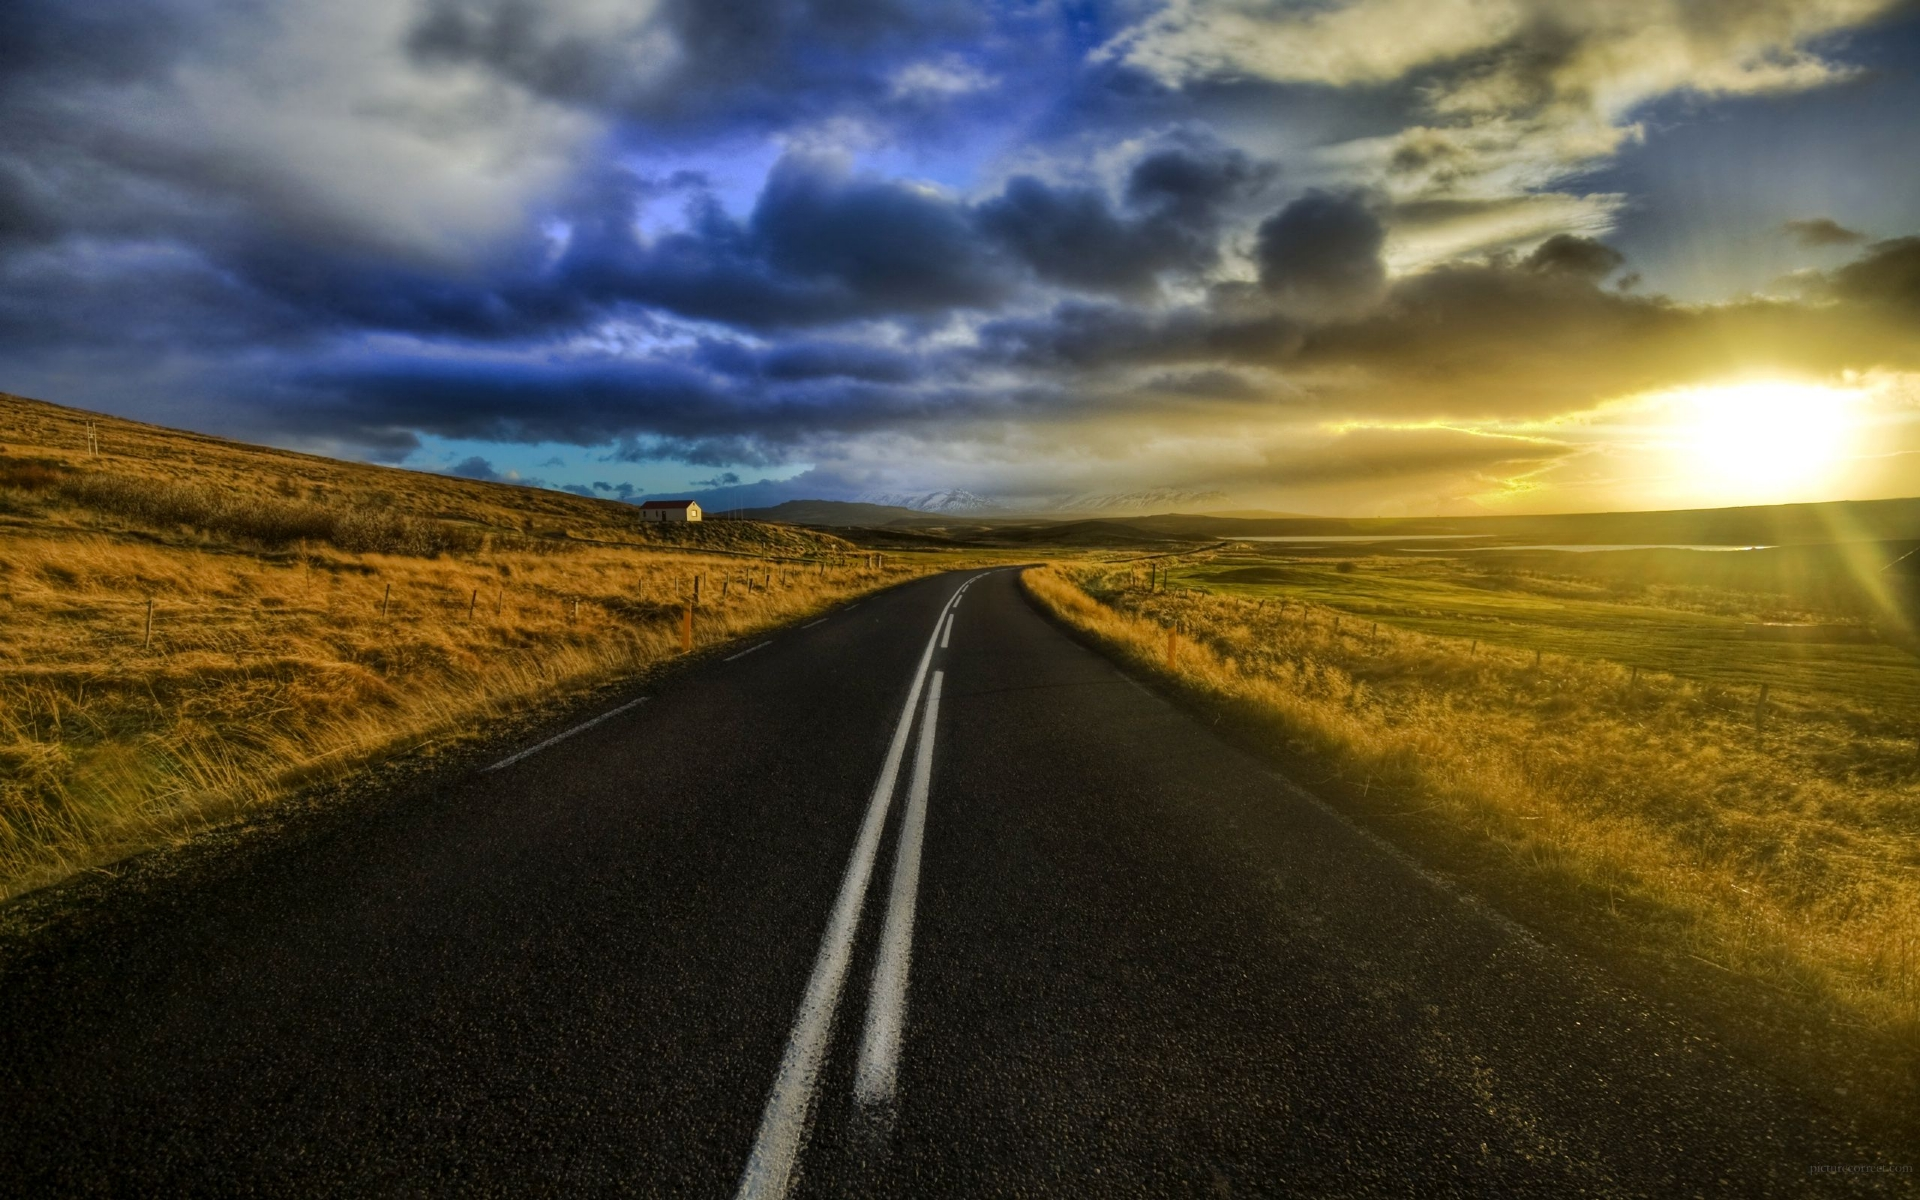 amazing_nature_with_road_1920x1200.jpg